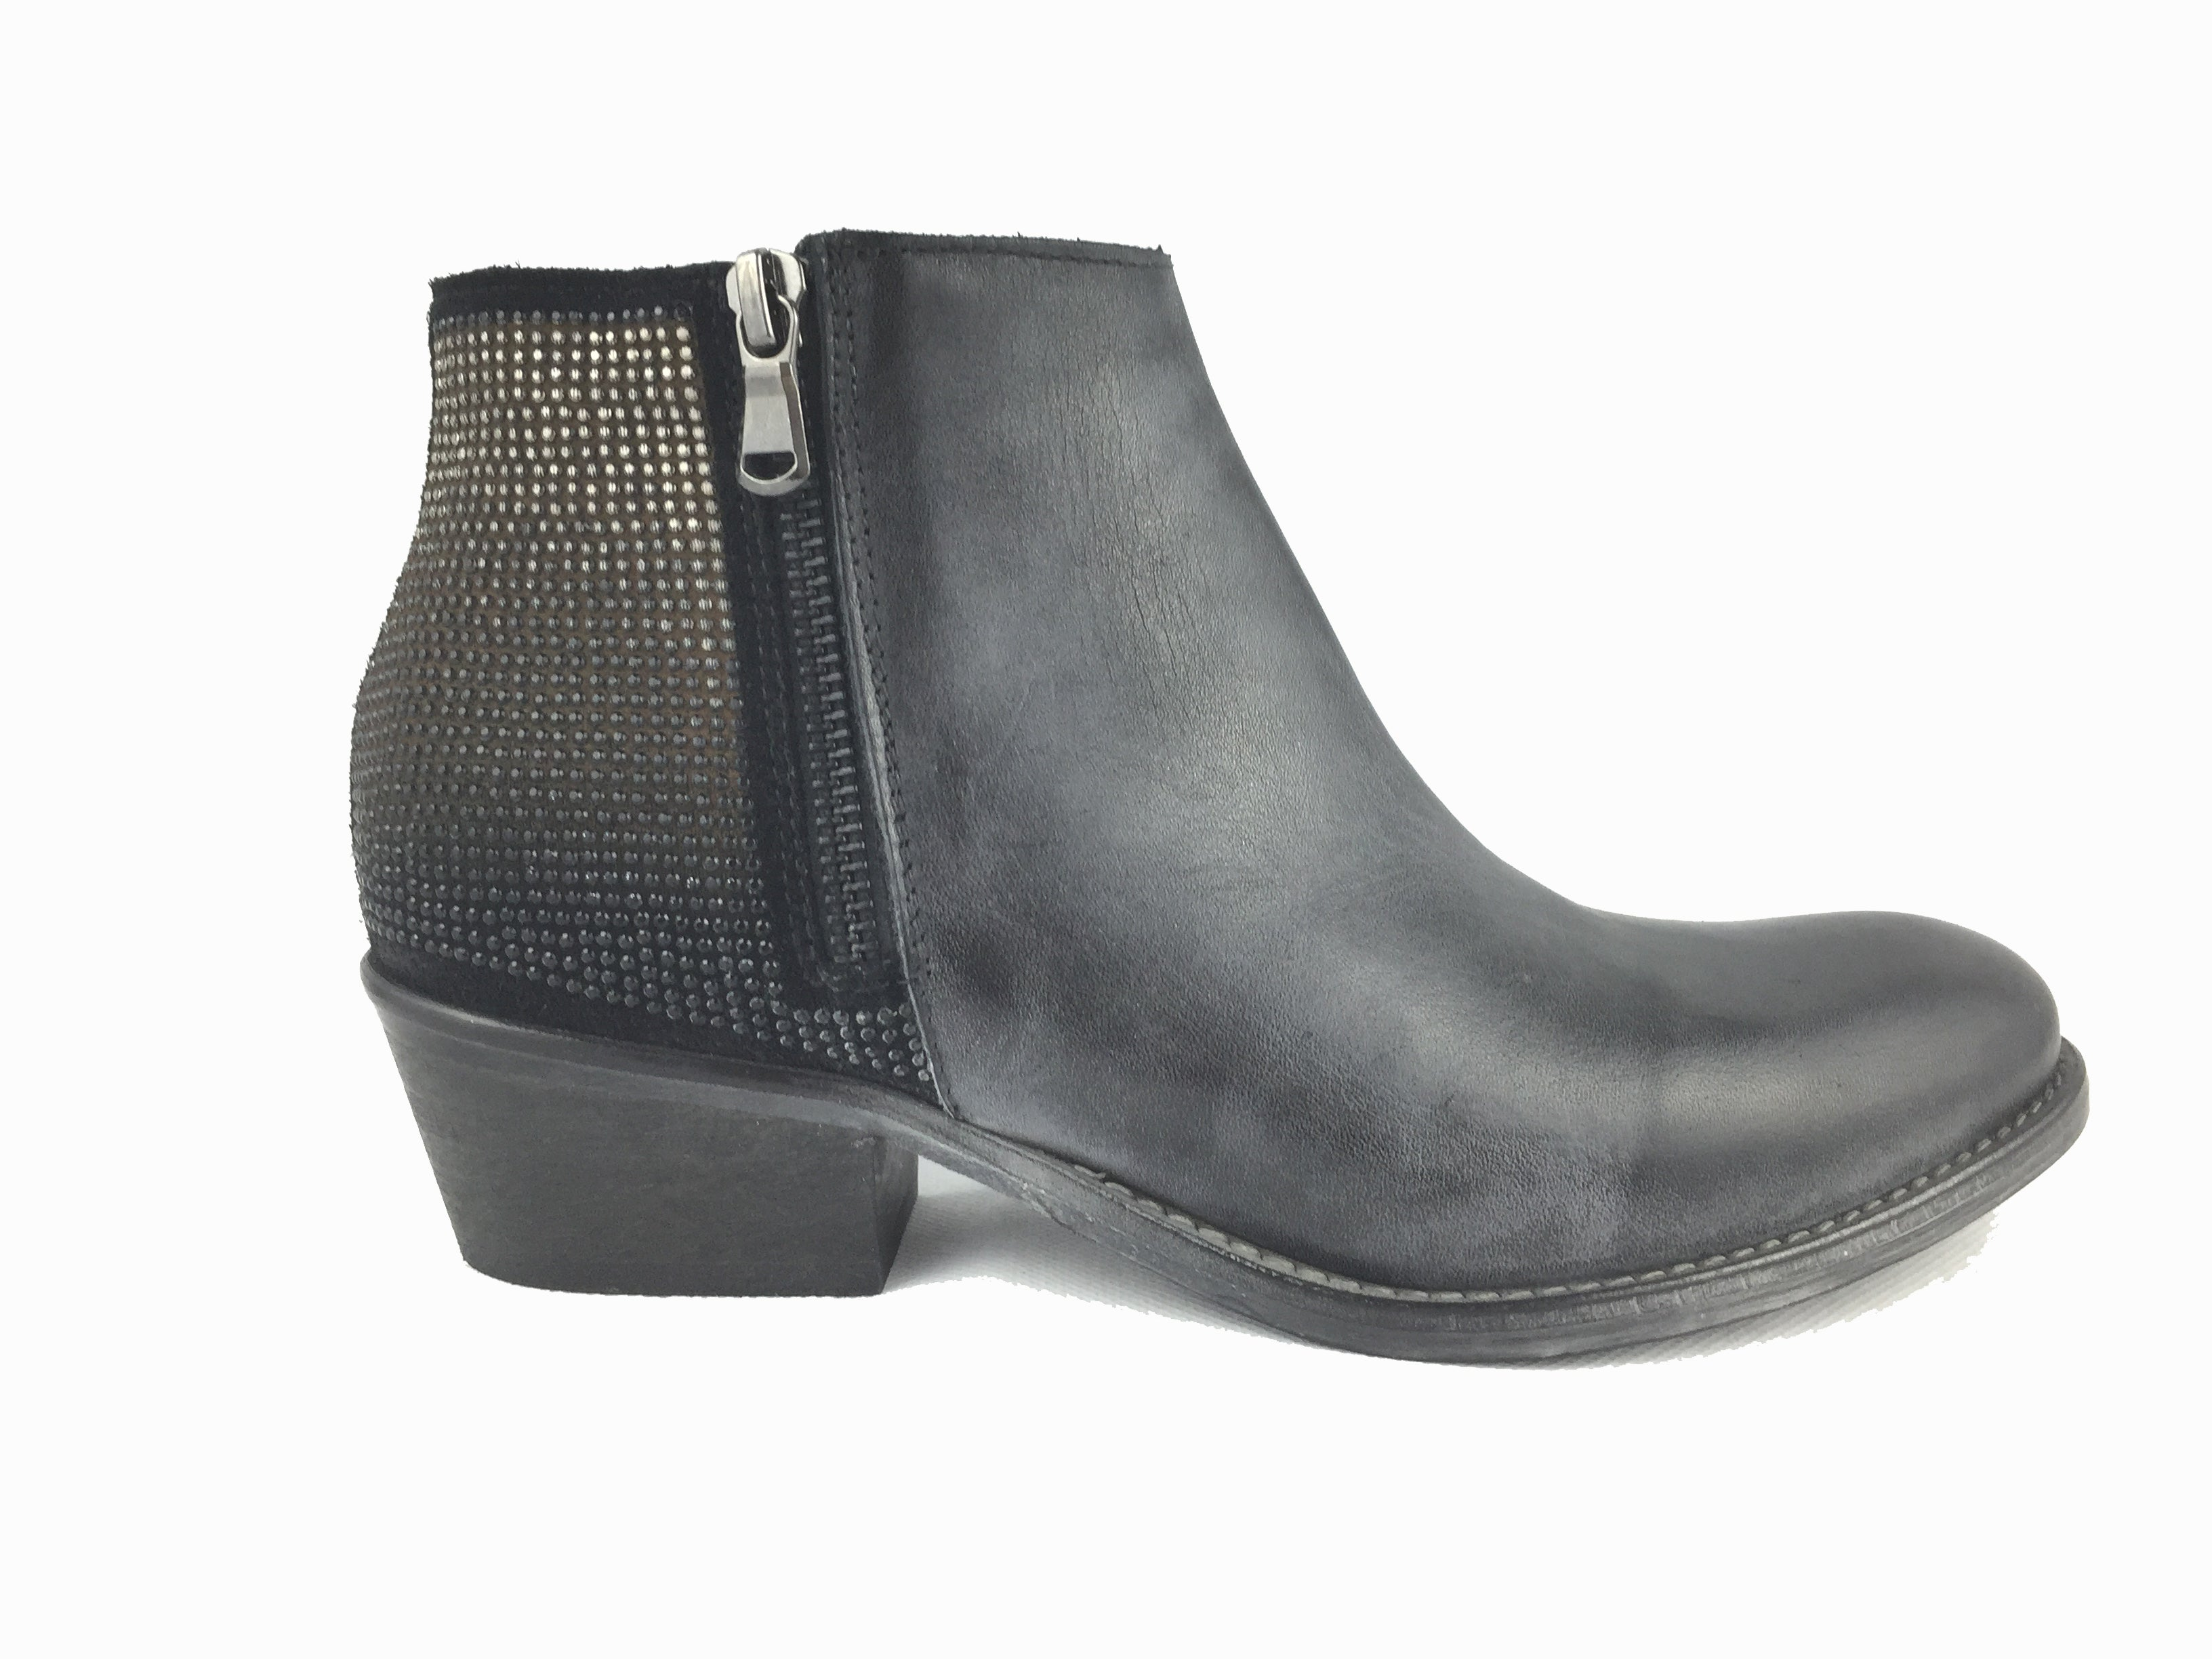 Charcoal grey leather ankle boot with ombre embellished design on back. Inside and outside zip fastening. 1.5 inch wooden effect heel. Round toe.